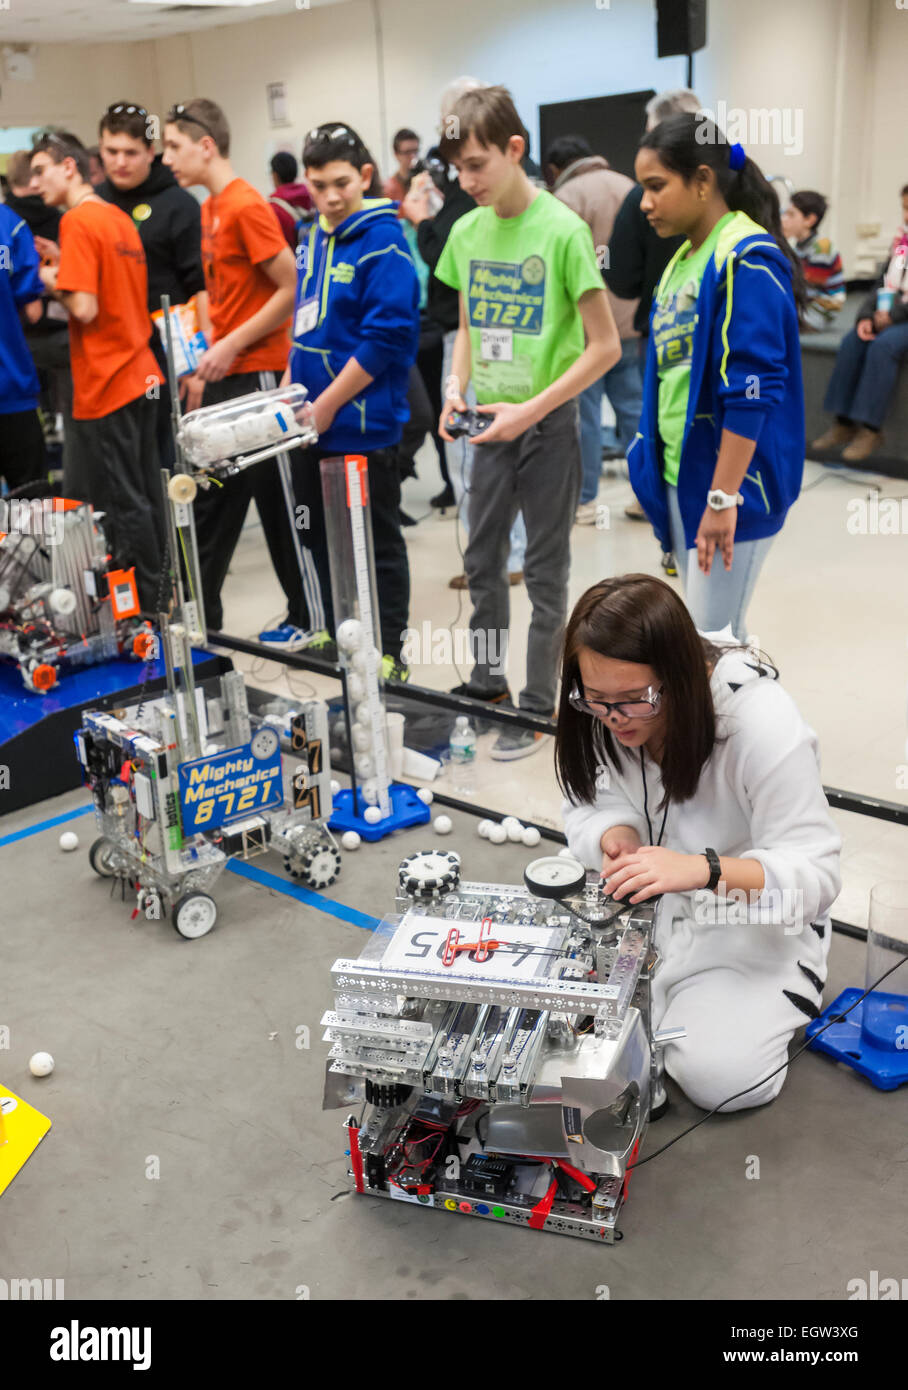 FIRST Tech Challenge Regional Championship held at NYU-Polytechnic in Brooklyn in New York - Stock Image